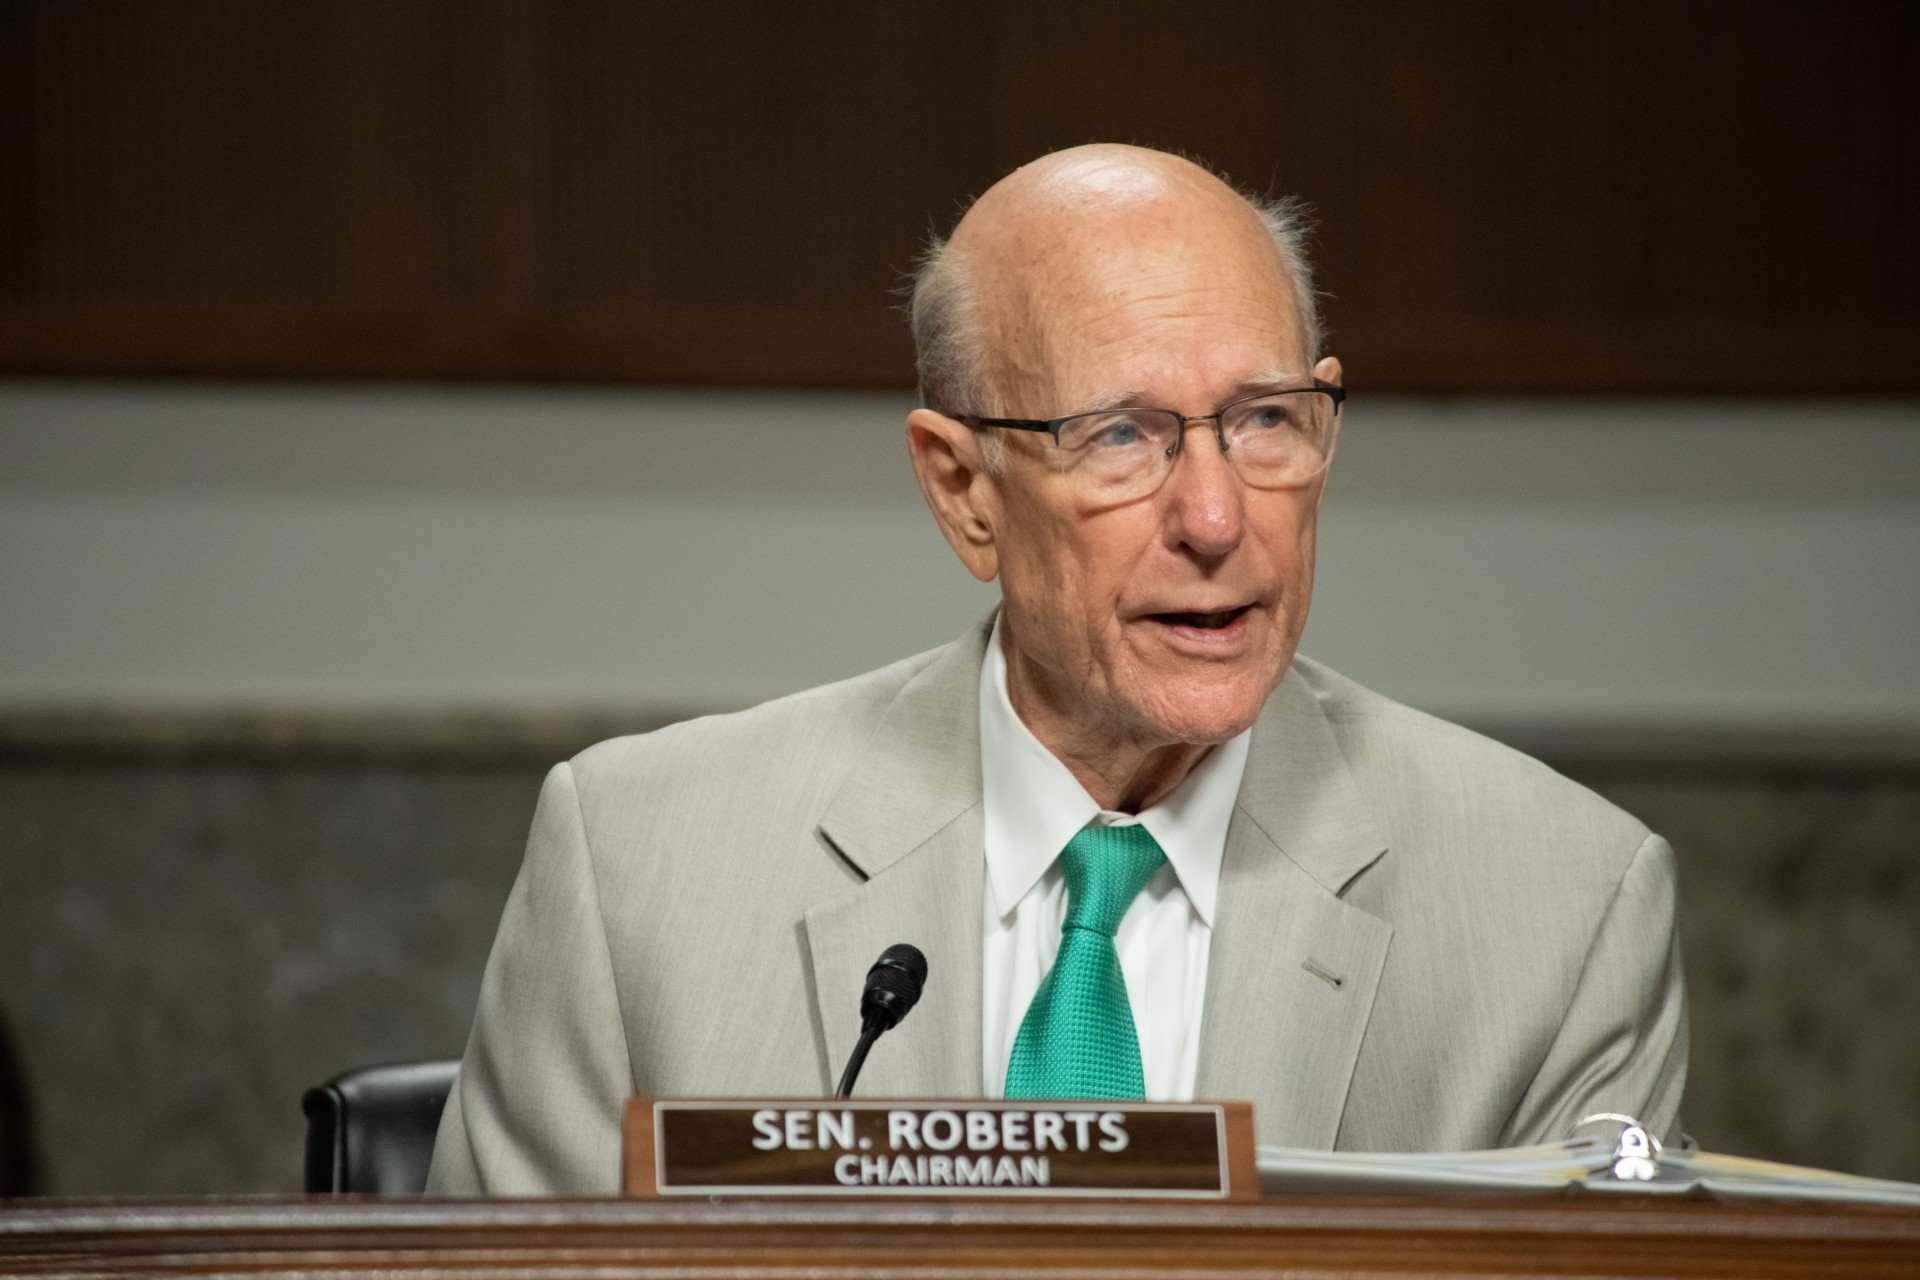 U.S. Sens. Pat Roberts and Jerry Moran, Kansas Republicans, joined with former U.S. Sen. Robert Dole to endorse GOP U.S. Rep. Roger Marshall for Roberts' seat in the U.S. Senate. (Submitted/Kansas Reflector)